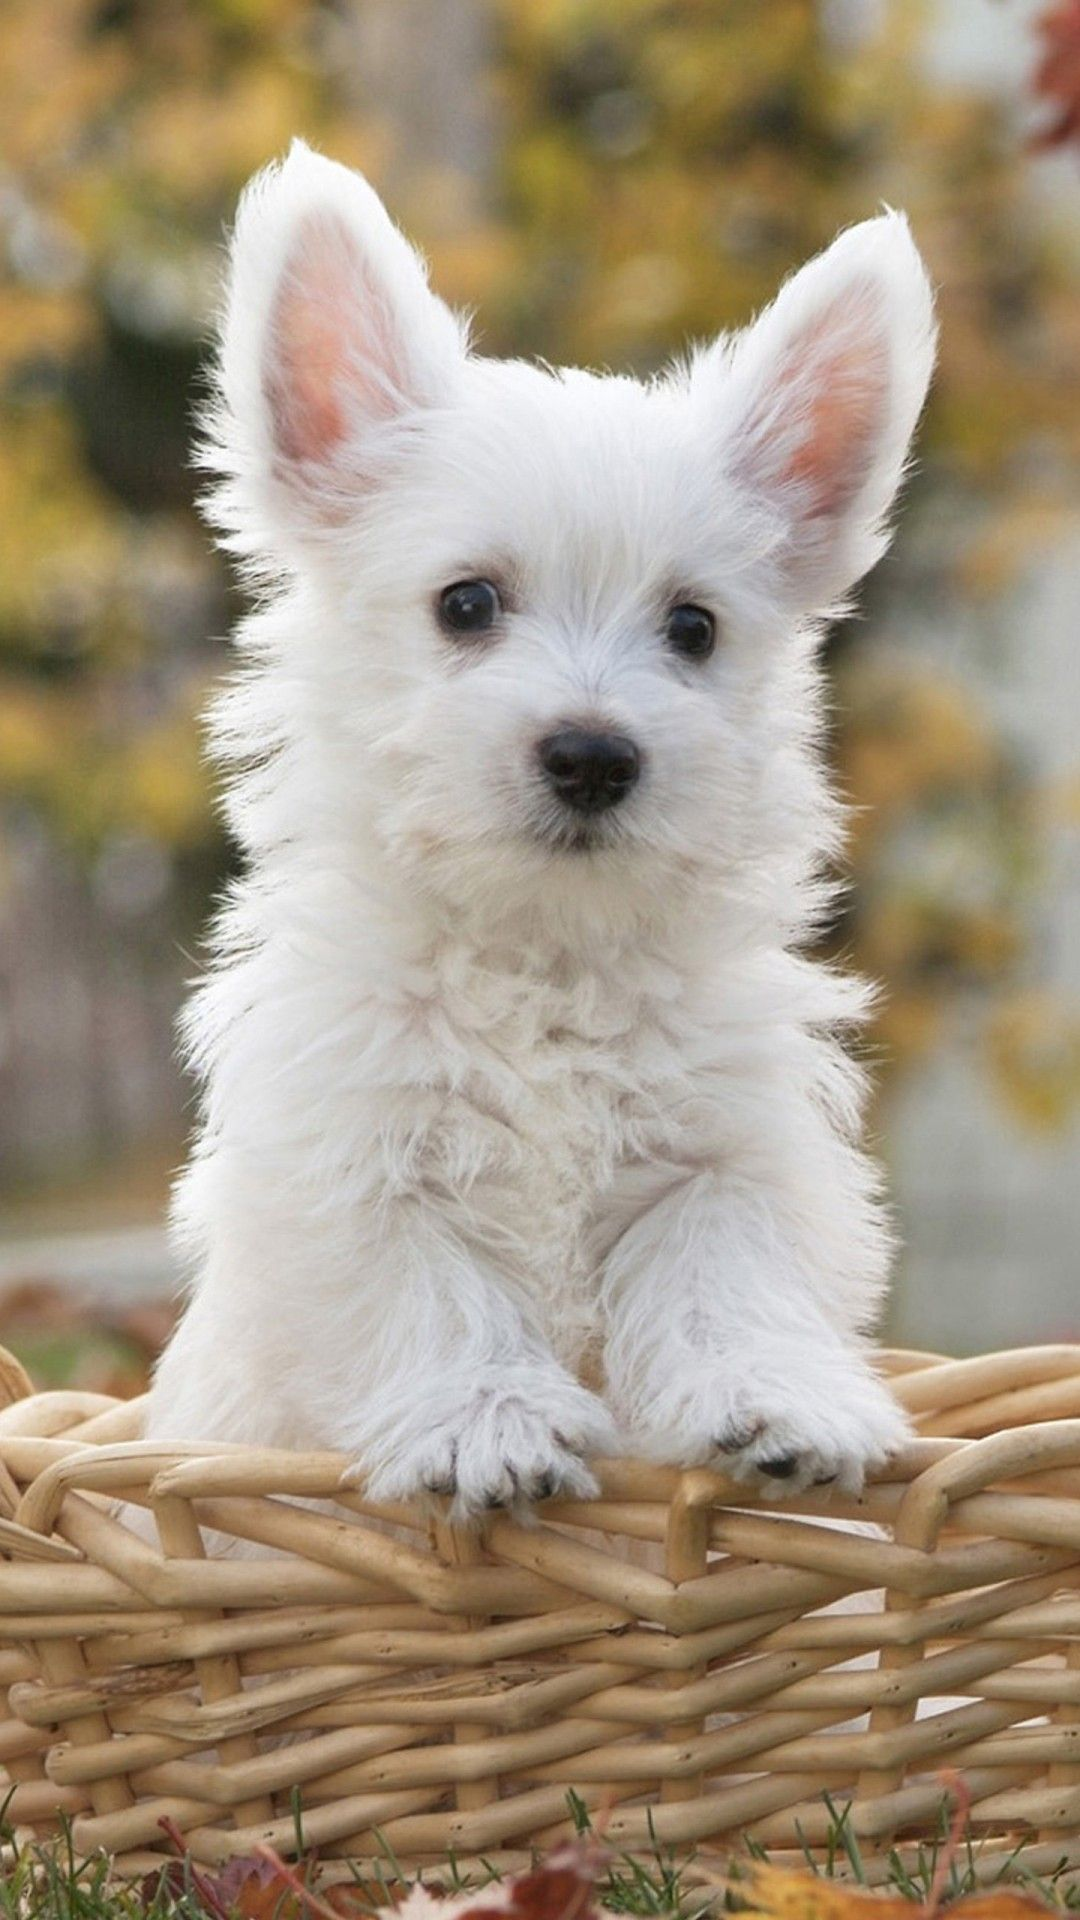 Pin By Sabjoe On Dogs Cute White Dogs Cute Dog Wallpaper Dog Wallpaper